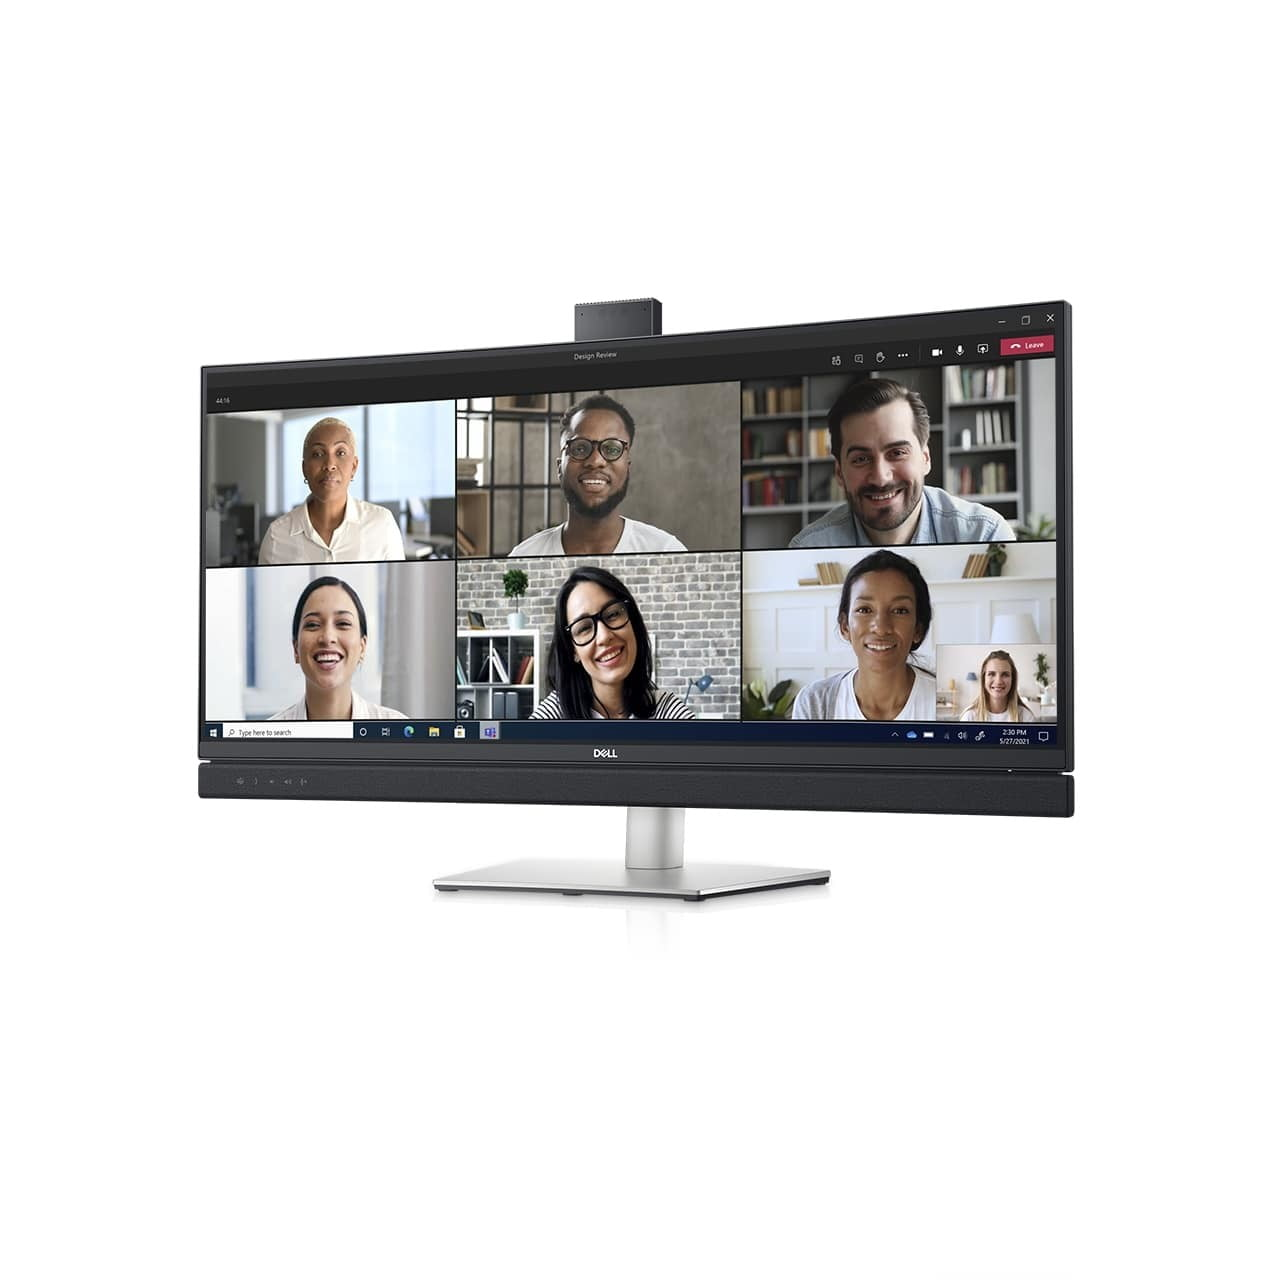 dell refreshes ultrasharp monitors ces 2021 34 video conferencing monitor front left angle screen fill 1